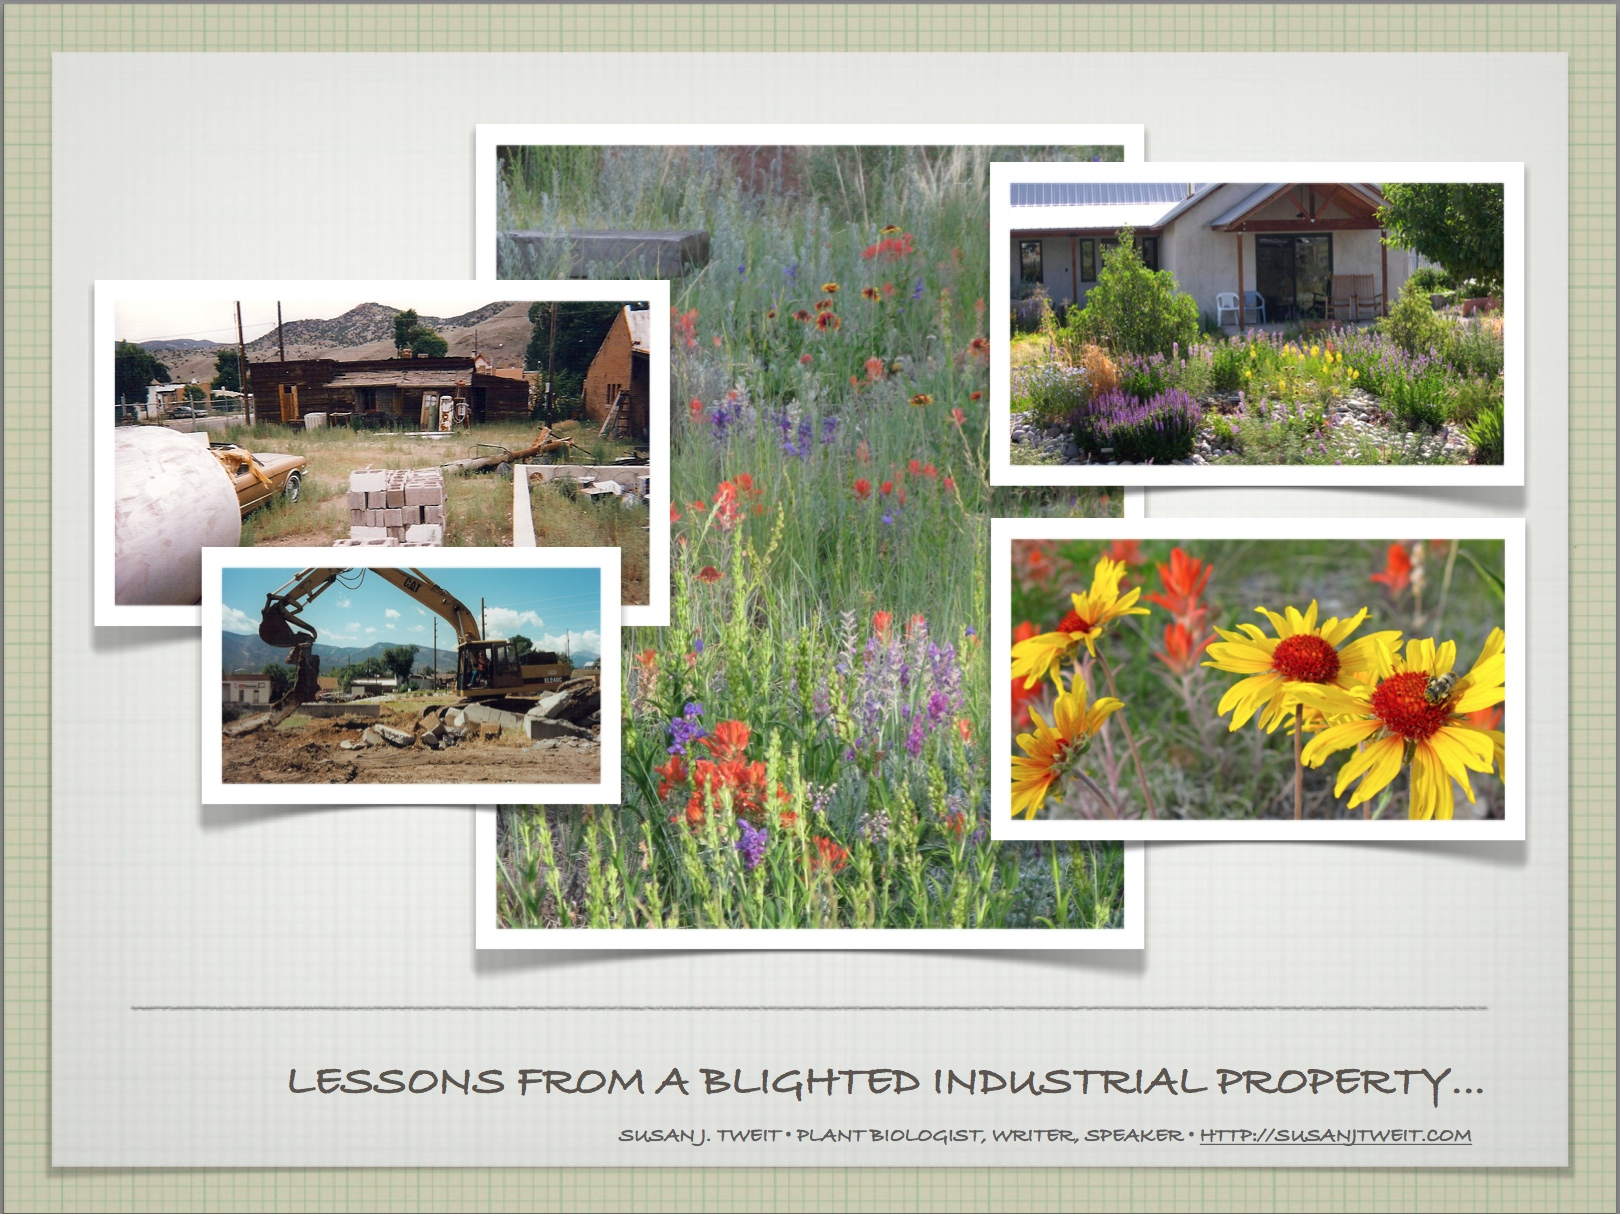 Inspiration and lessons from my own formerly blighted industrial property.